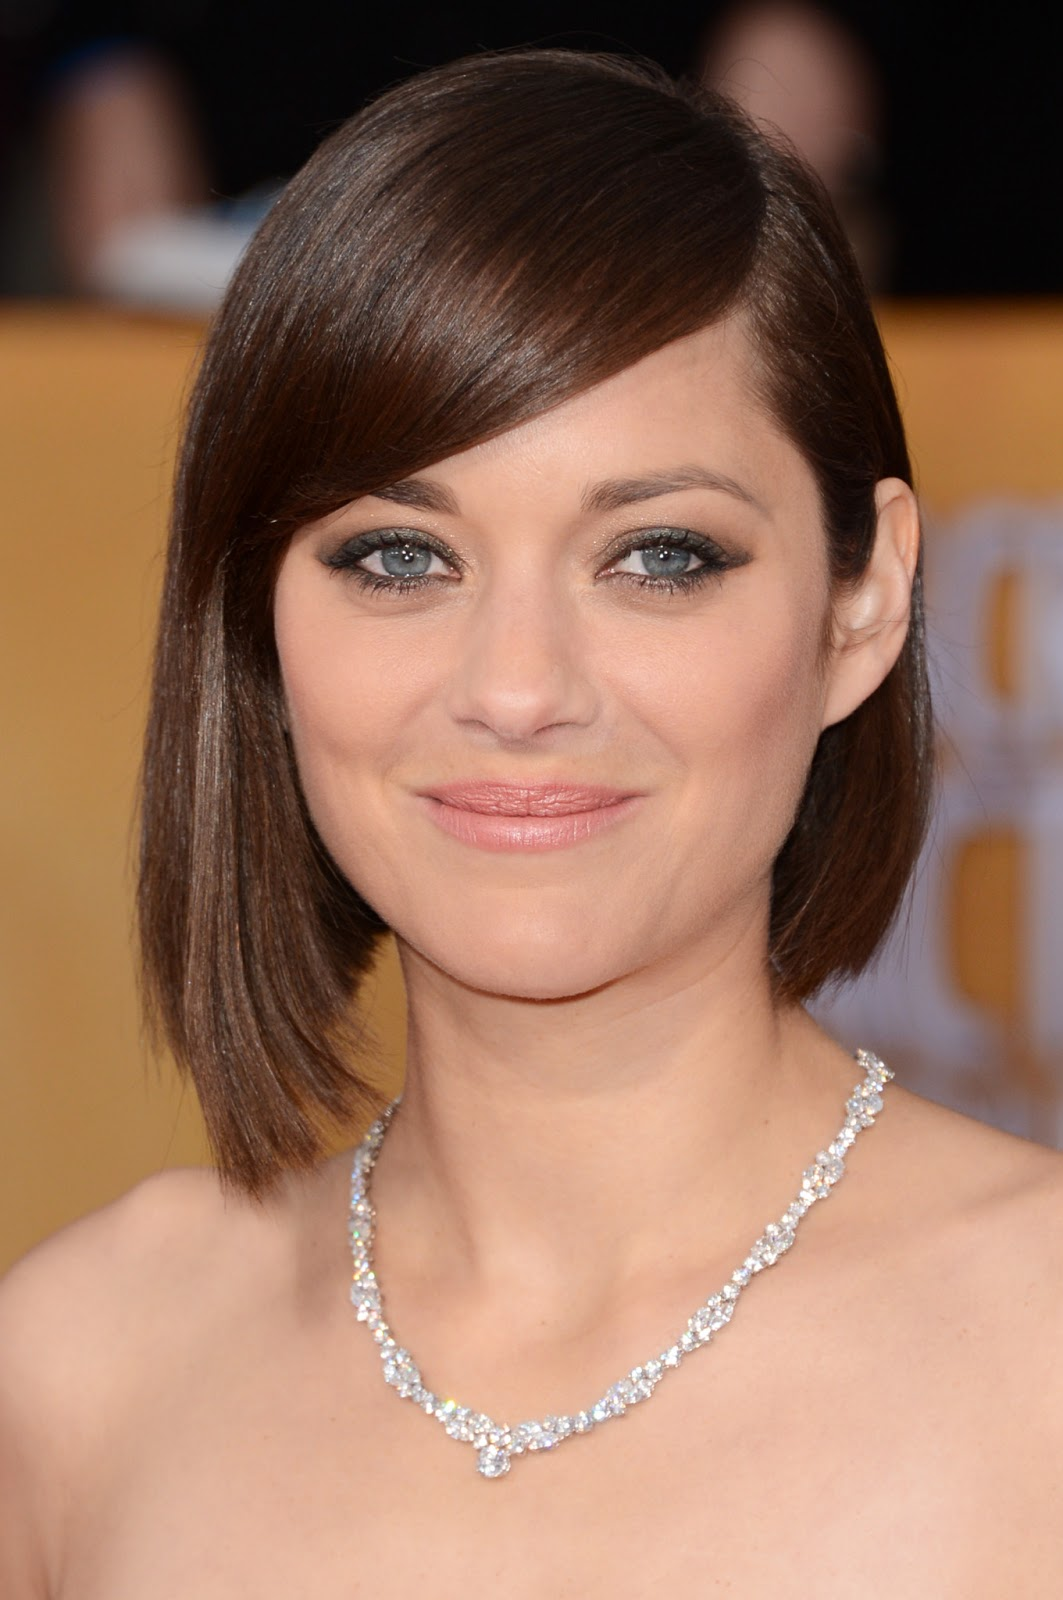 http://4.bp.blogspot.com/-latqZXN8Yuo/UQbvwlPSC7I/AAAAAAAASuM/D5CW2GxKOts/s1600/Marion+Cotillard+wearing+Chopard+to+the+Screen+Actors+Guild+Awards,+L.A.,+January+27th,+2013_2.jpg